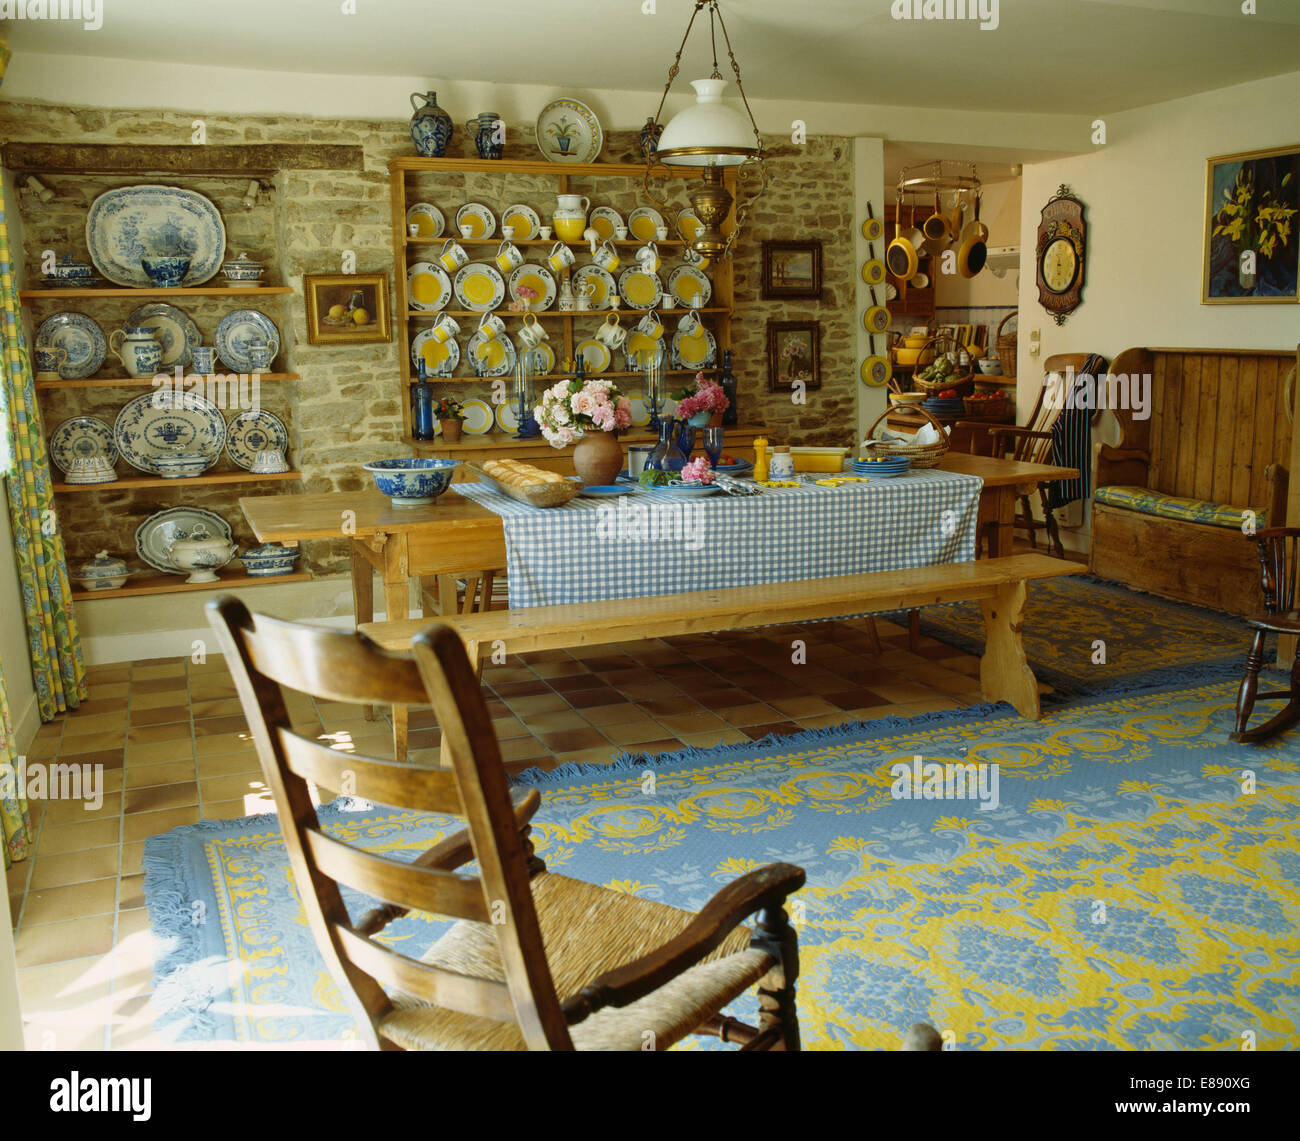 Rocking Chair And Blue Yellow Rug In French Country Dining Room With Bench At Table Checked Cloth